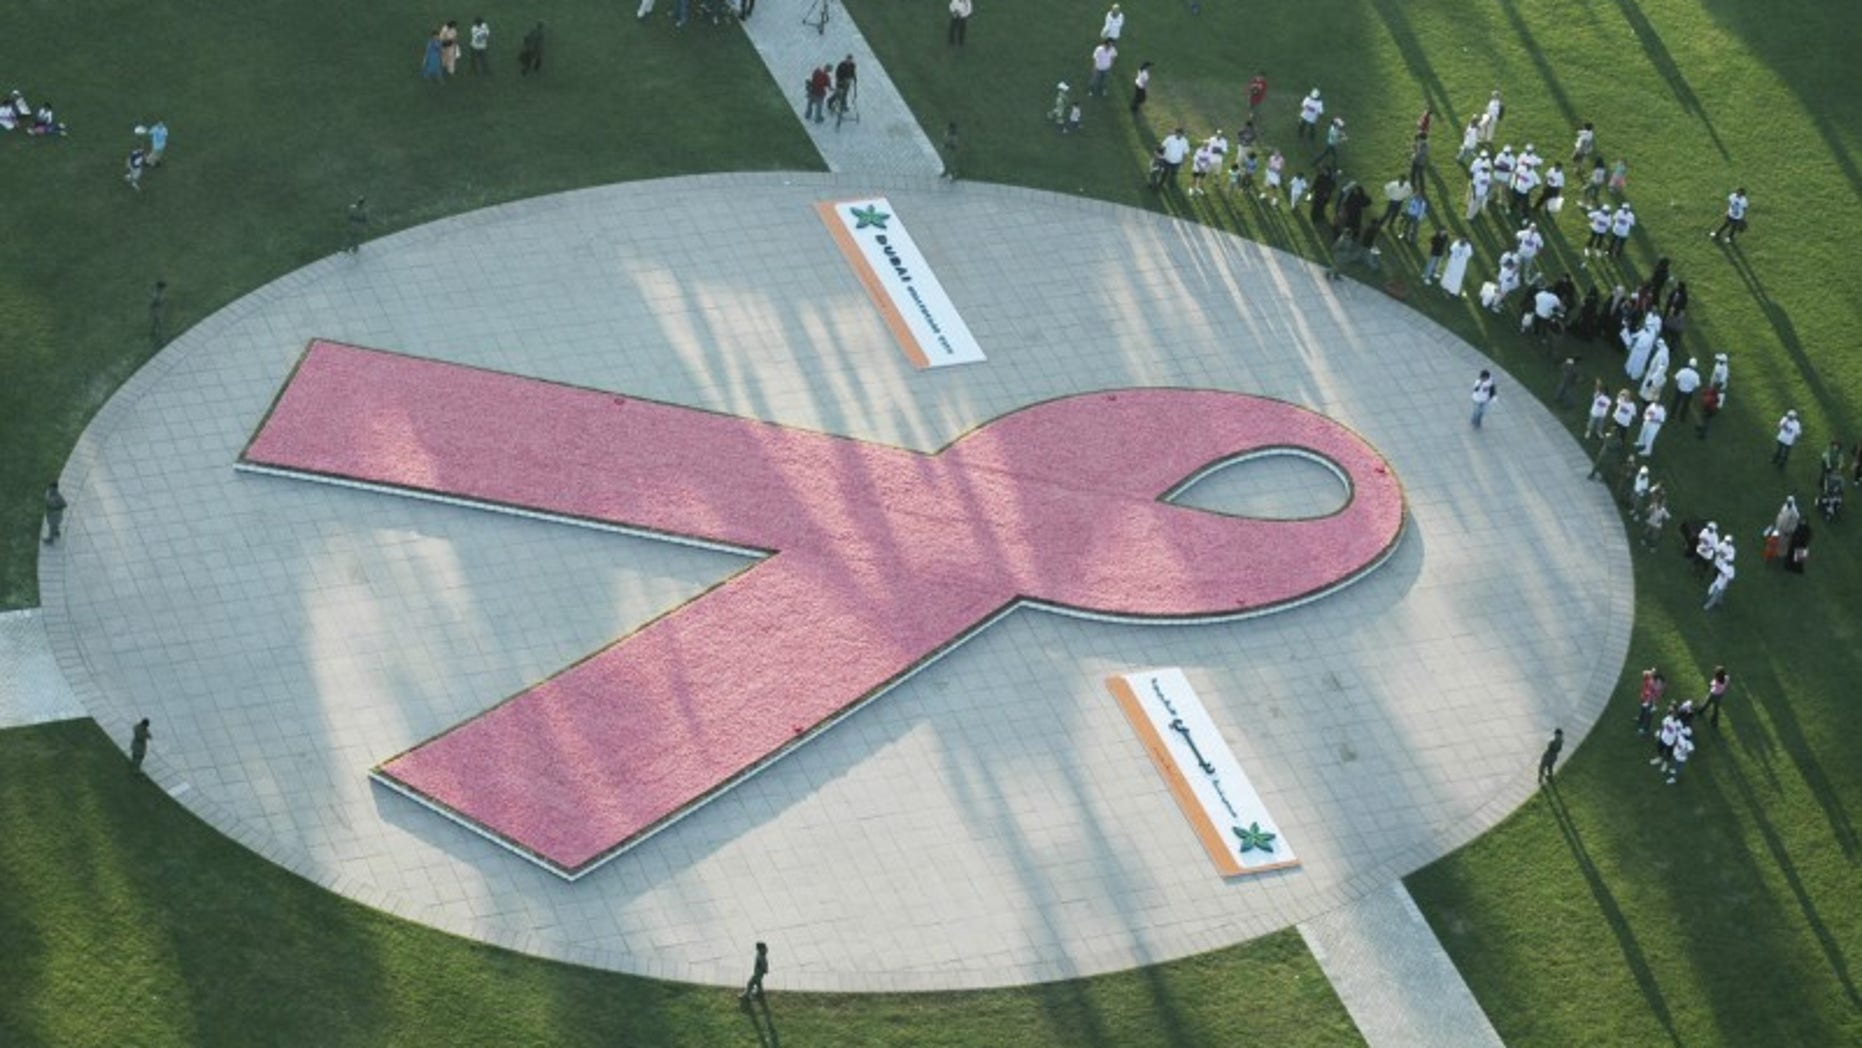 The world's largest awareness ribbon made of flowers is seen from above during the UAE leg of the Avon Walk around the world for Breast Cancer Awareness walkathon in Zaabeel park in Dubai